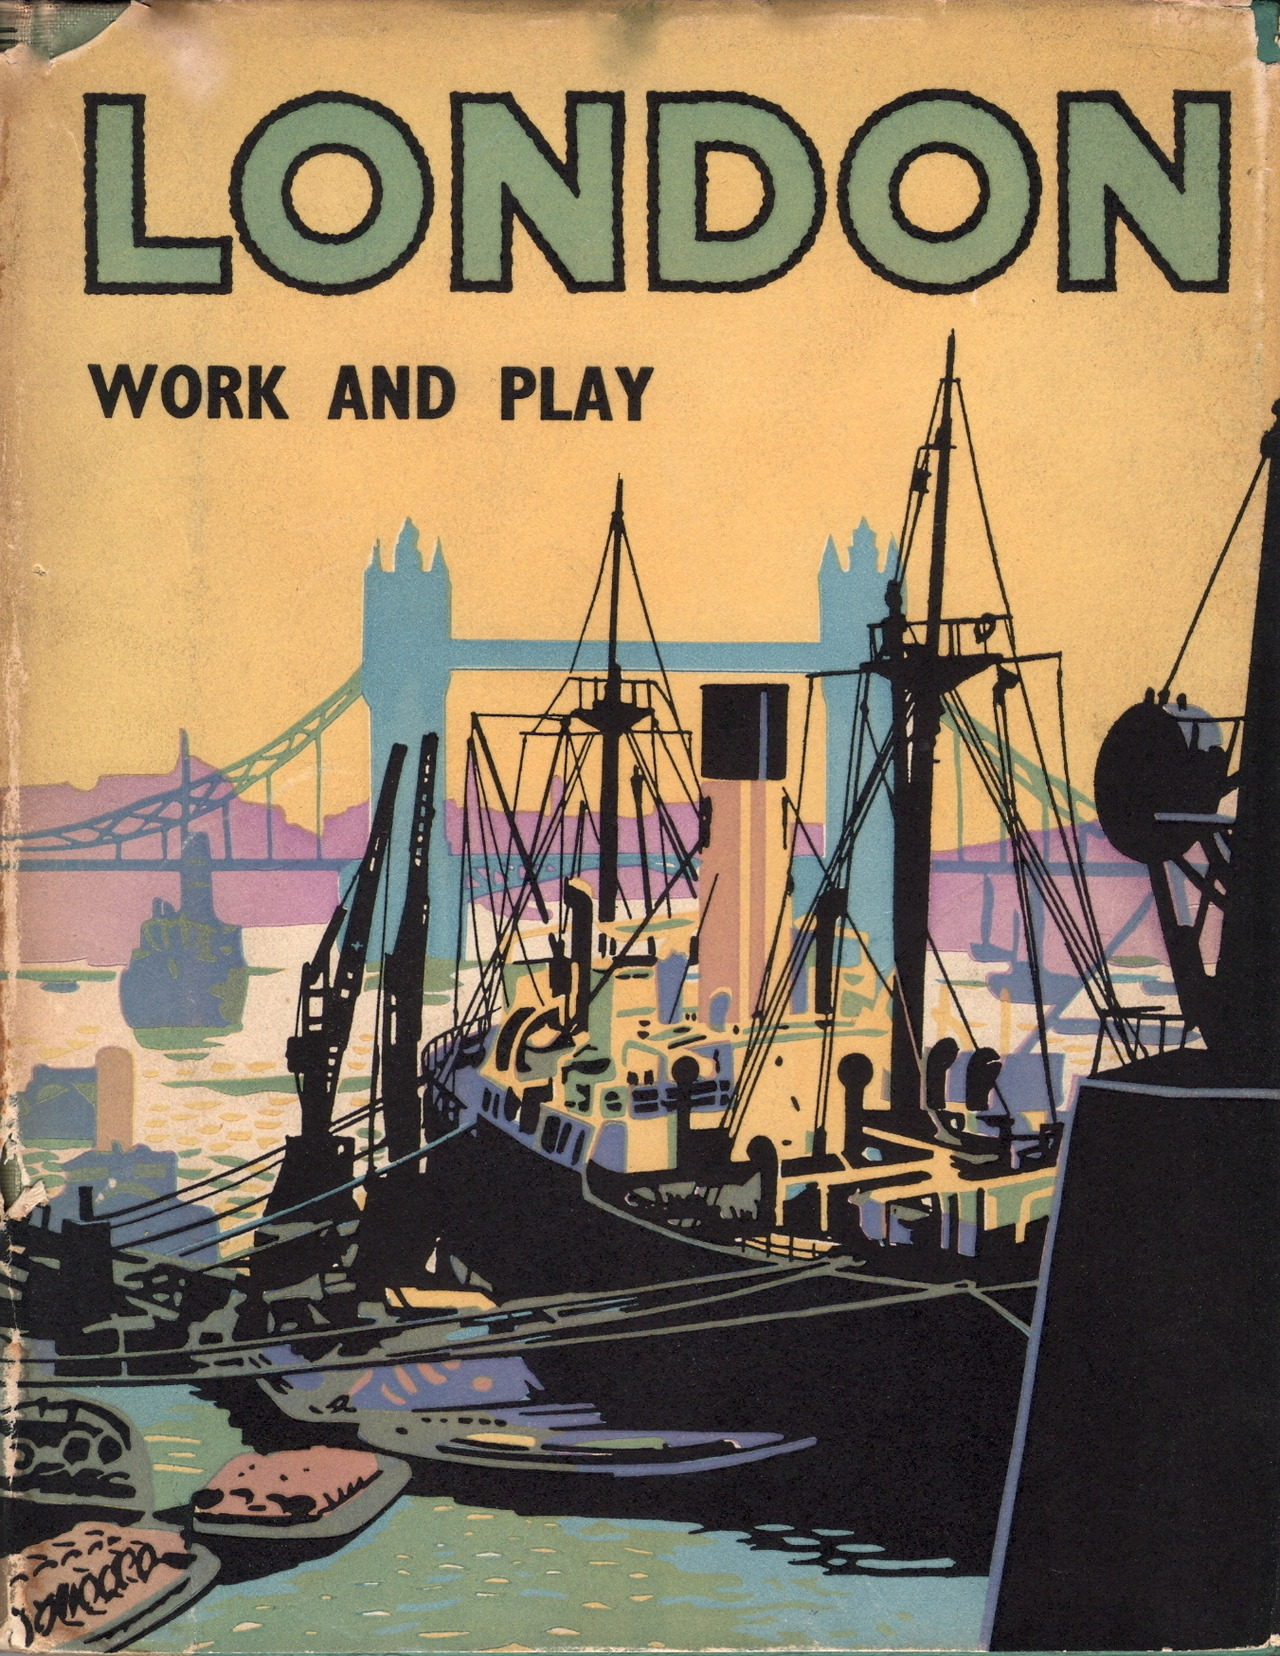 adventures-of-the-blackgang:  London, Work and Play - Harry Batsford, 1950Batsford produced books with highly recognisible covers - many by Brian Cook (who was to become Brian Batsford). This one is reminiscent of his work but I'm not sure if it is one of his.